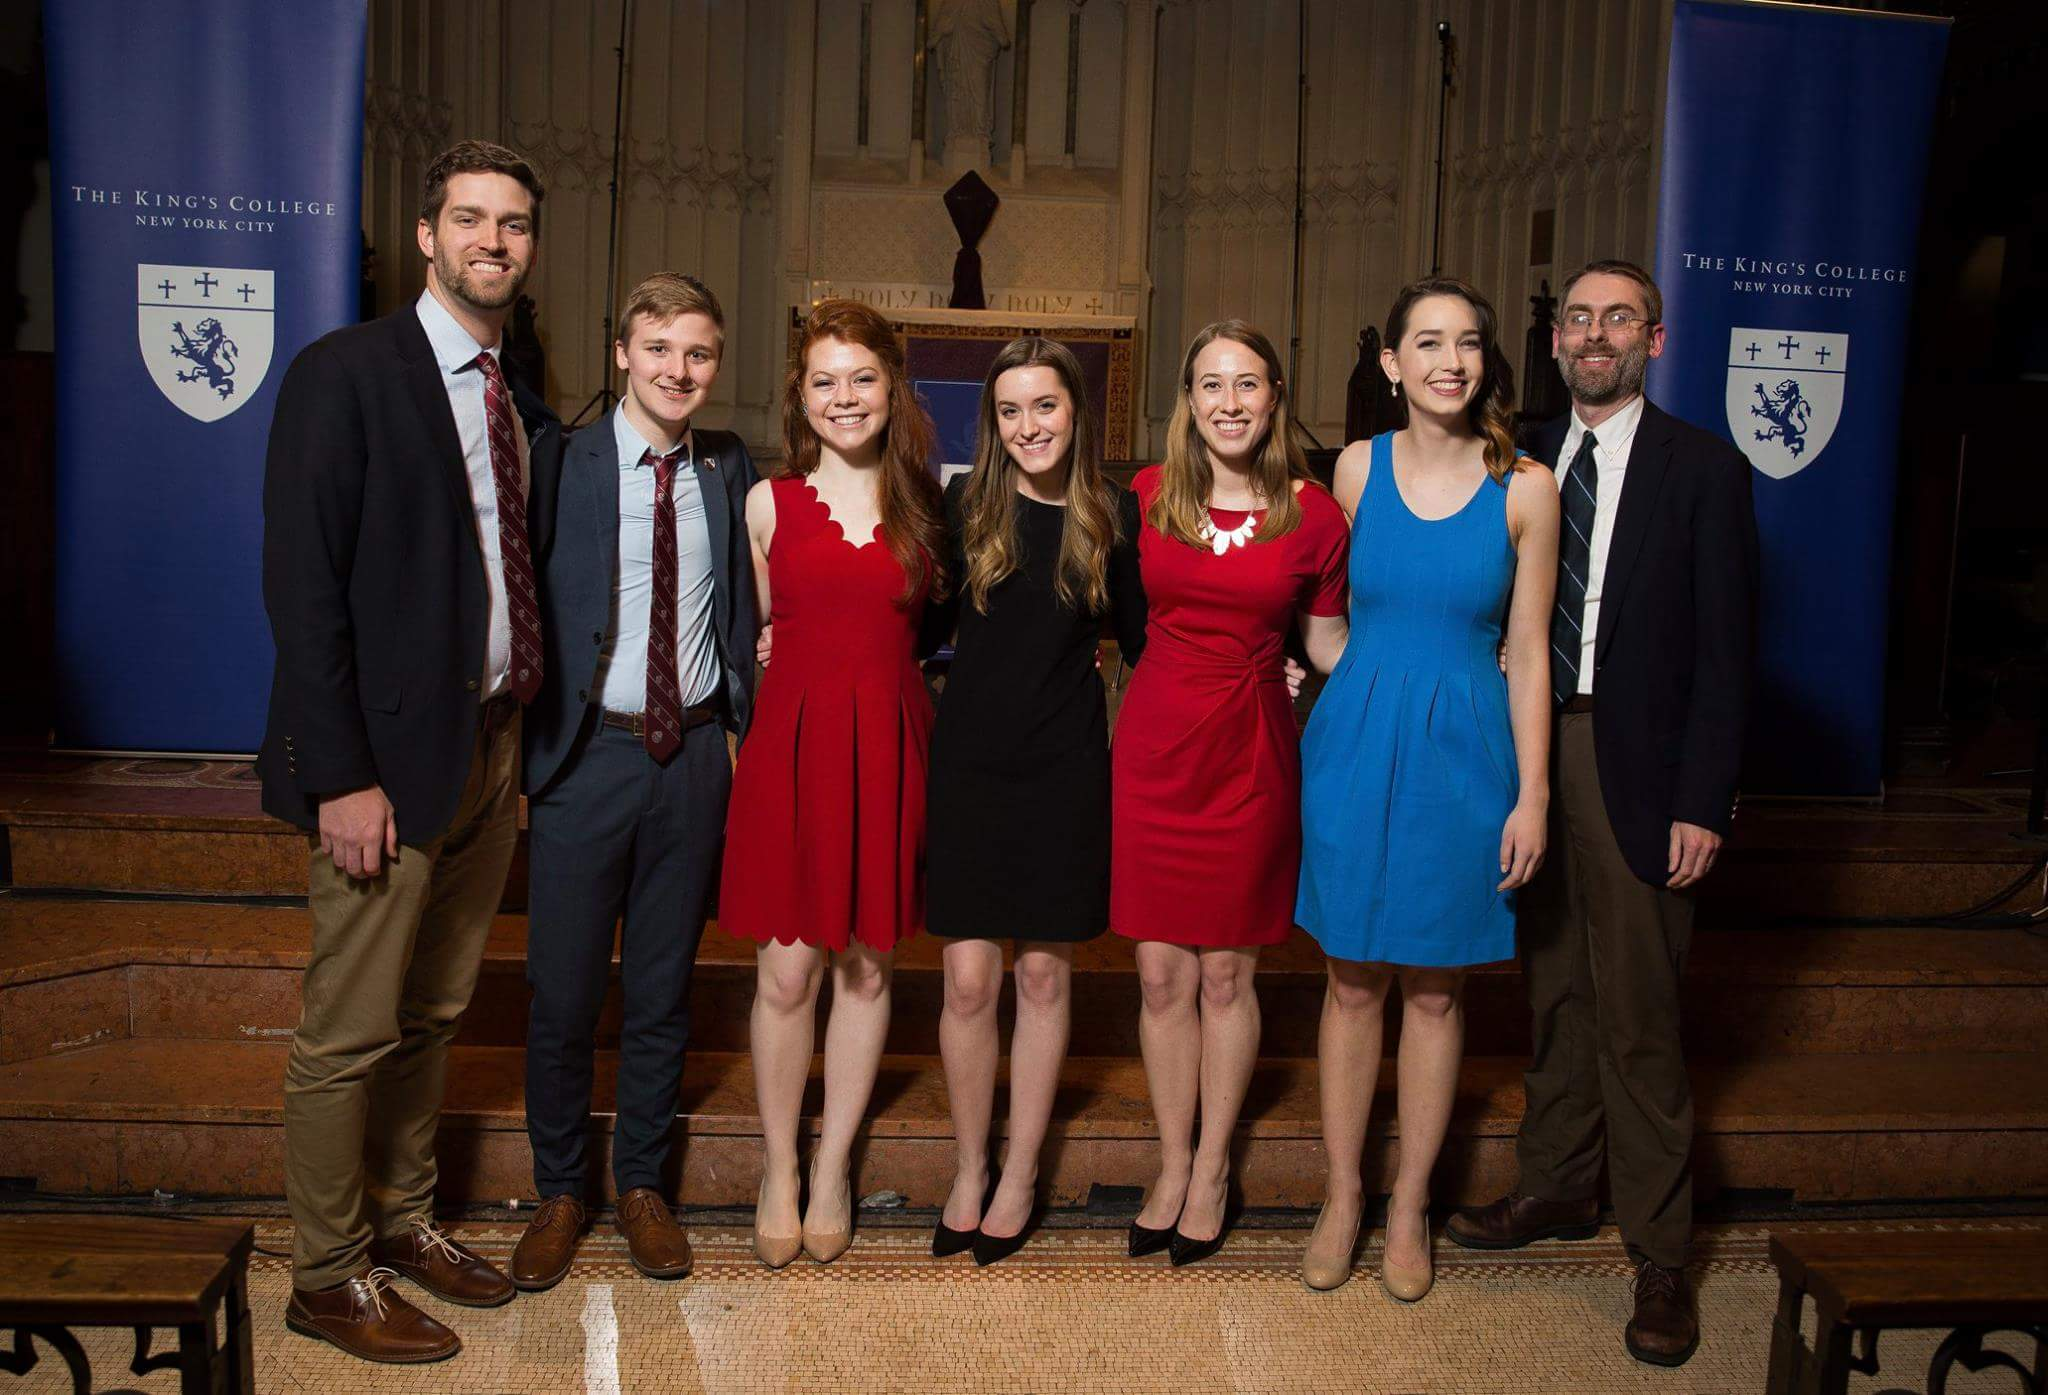 2016-2017 Interregnum Committee | Photo from The King's College